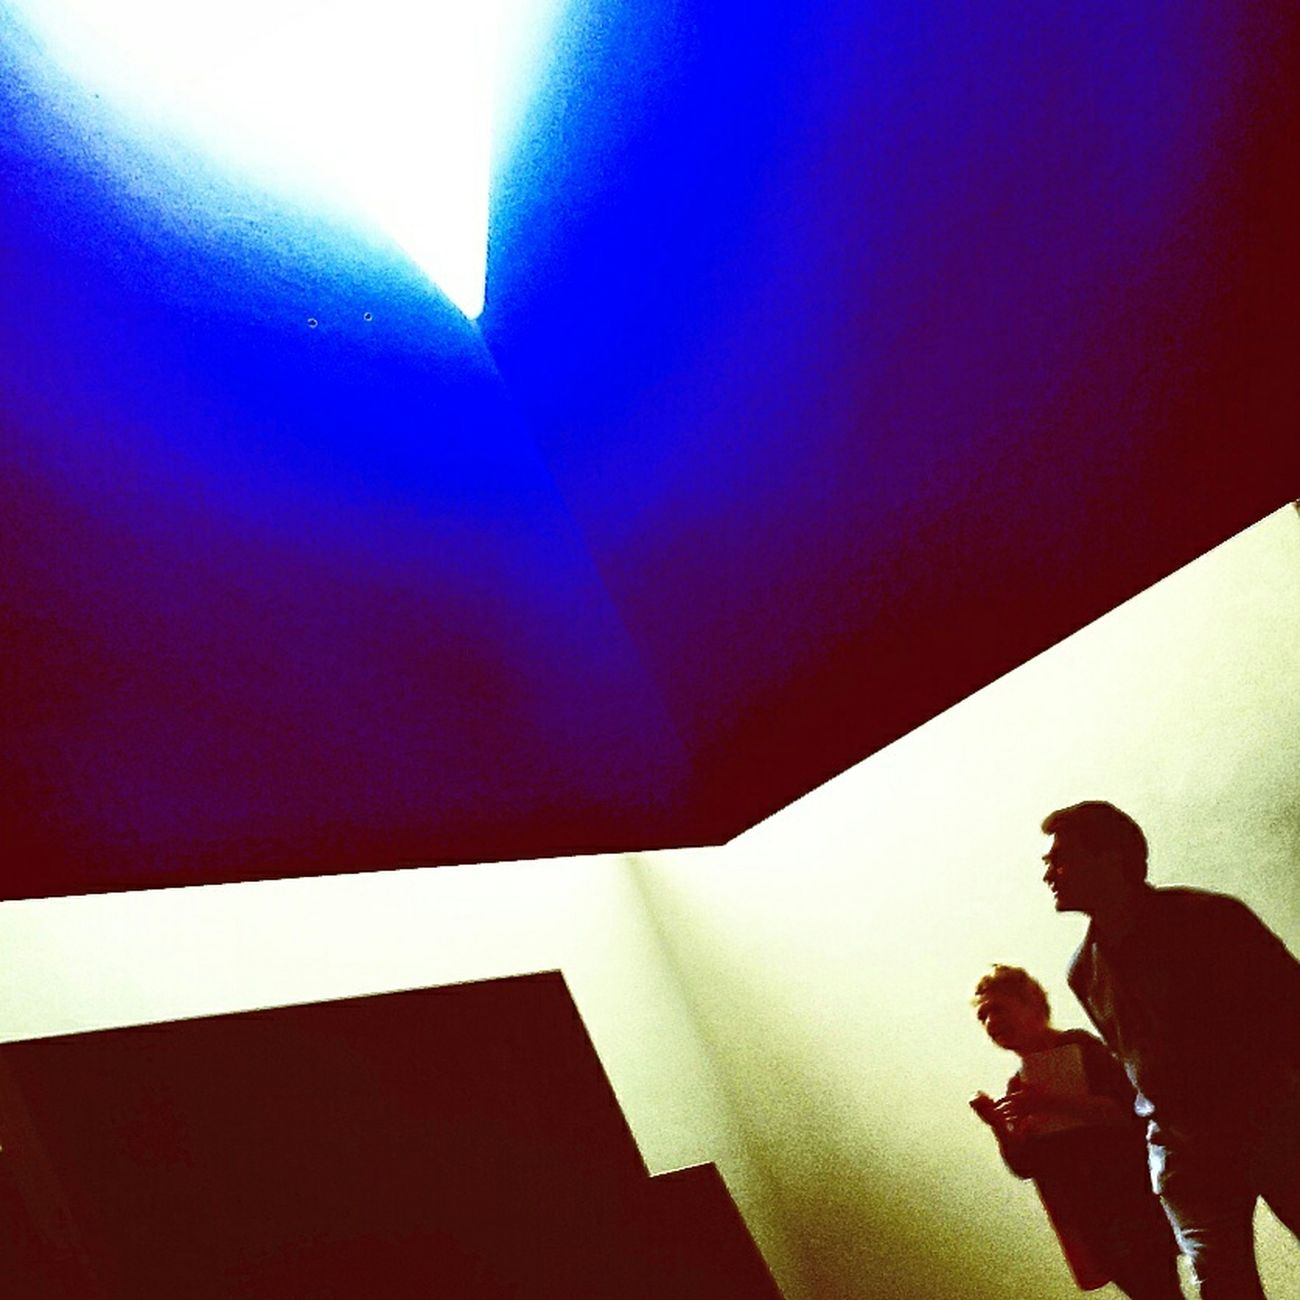 Creative Light And Shadow Bennington College. Blue Taking Photos Reflections Surreal Psychedelic Trippy DavidLynch Souls And Shadows Light